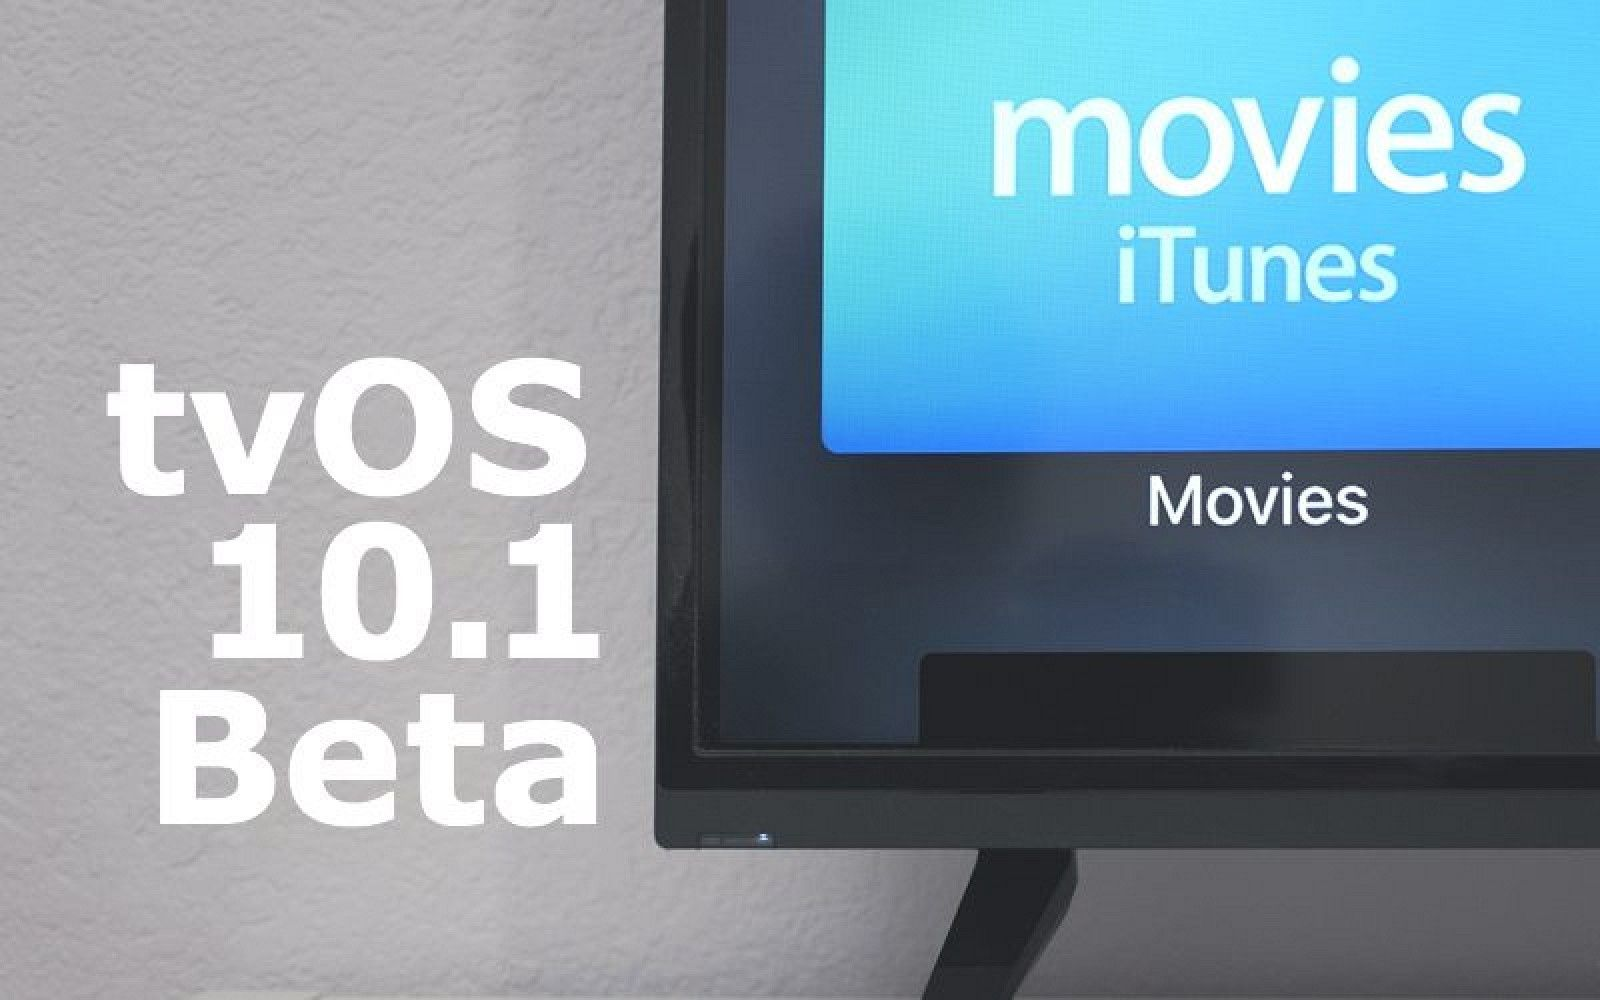 Apple Seeds First Beta of tvOS 10.1 to Developers